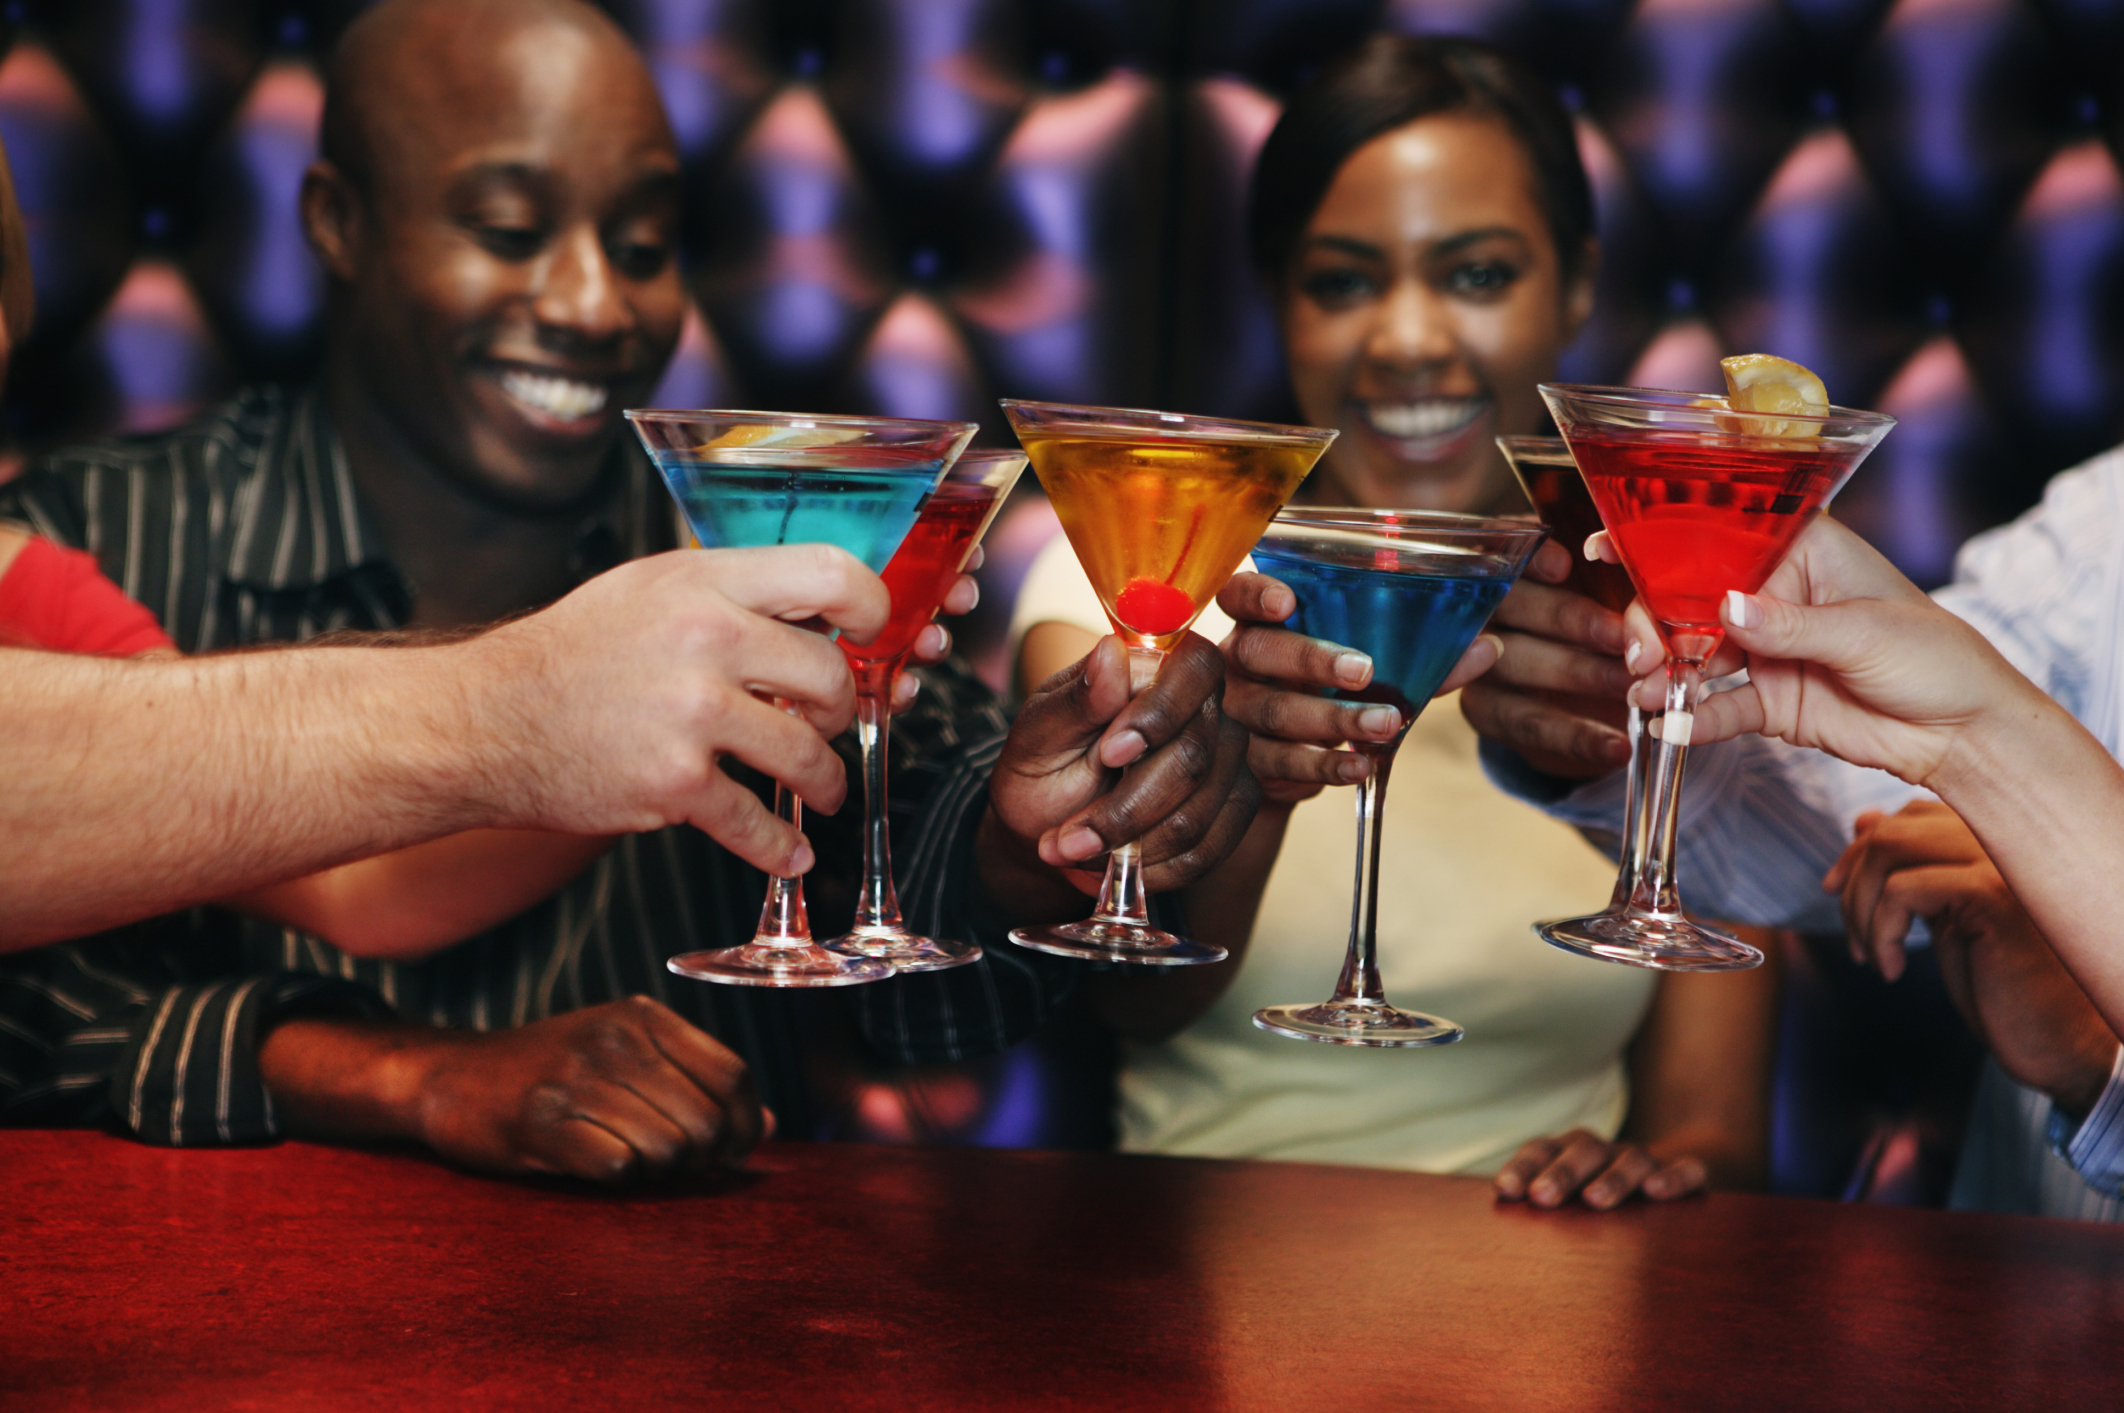 Nightlife: How to Budget When Out on the Town